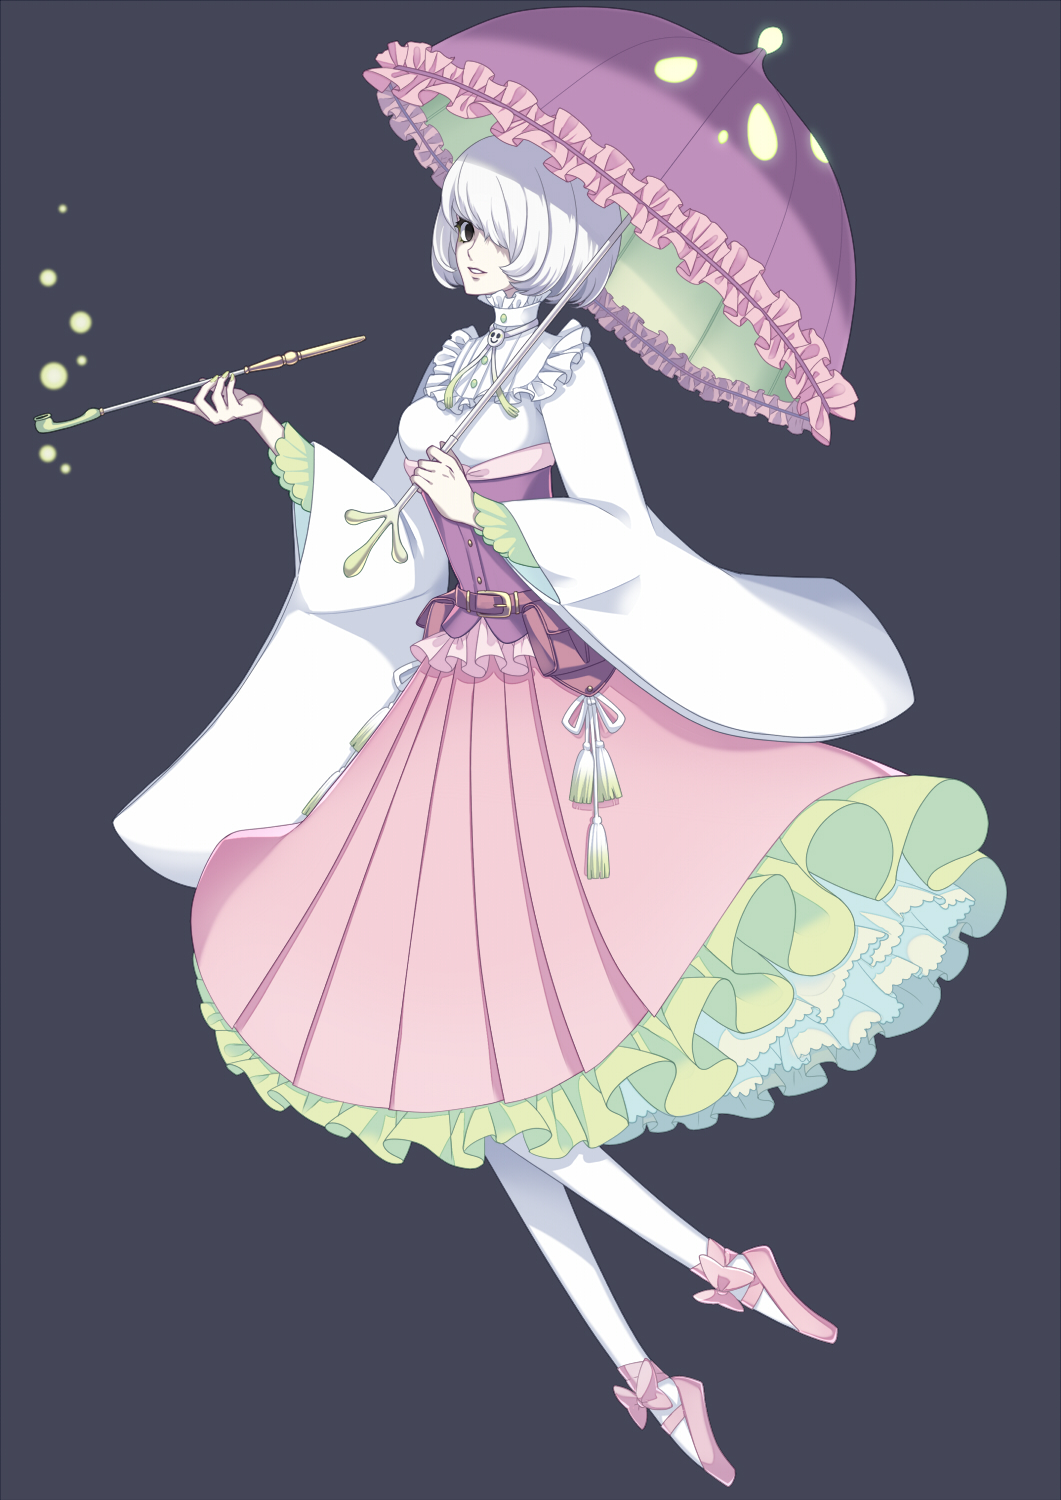 1girl ballet_slippers belt belt_pouch black_background breasts creatures_(company) dress full_body game_freak gen_7_pokemon hair_over_one_eye hand_up highres kiseru looking_at_viewer merlusa nintendo over_shoulder pantyhose parasol parted_lips personification pink_dress pink_footwear pink_umbrella pipe pokemon pouch shiinotic short_hair simple_background solo standing umbrella white_hair white_legwear wide_sleeves